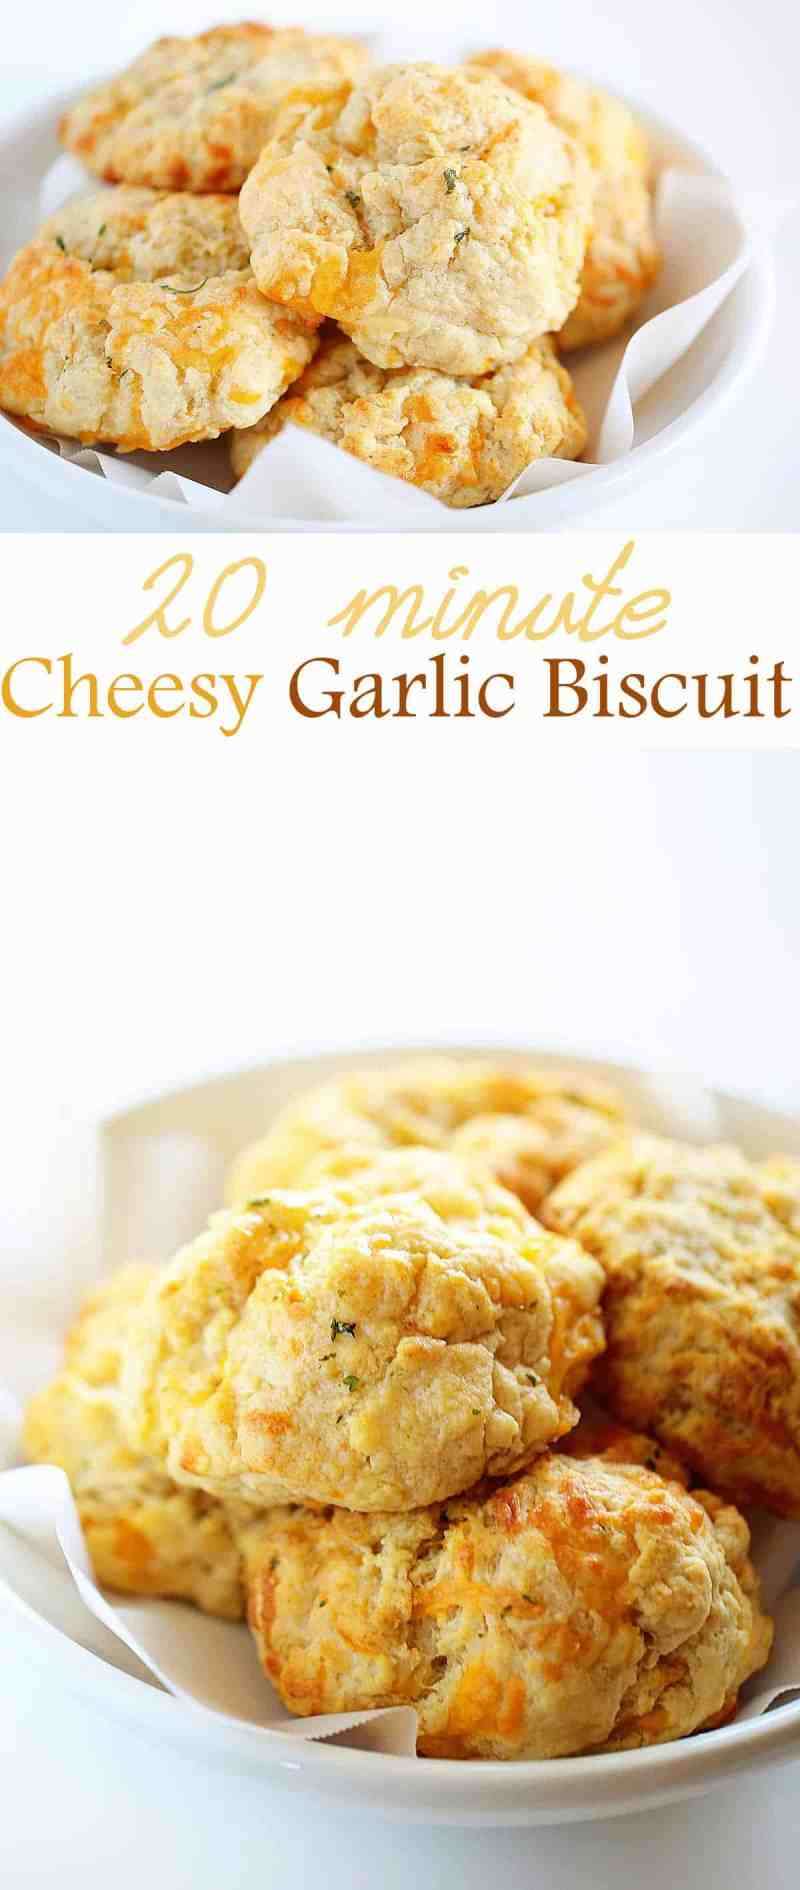 No one ever has to know it only took 20 minutes to make these MOUTHWATERING biscuits!